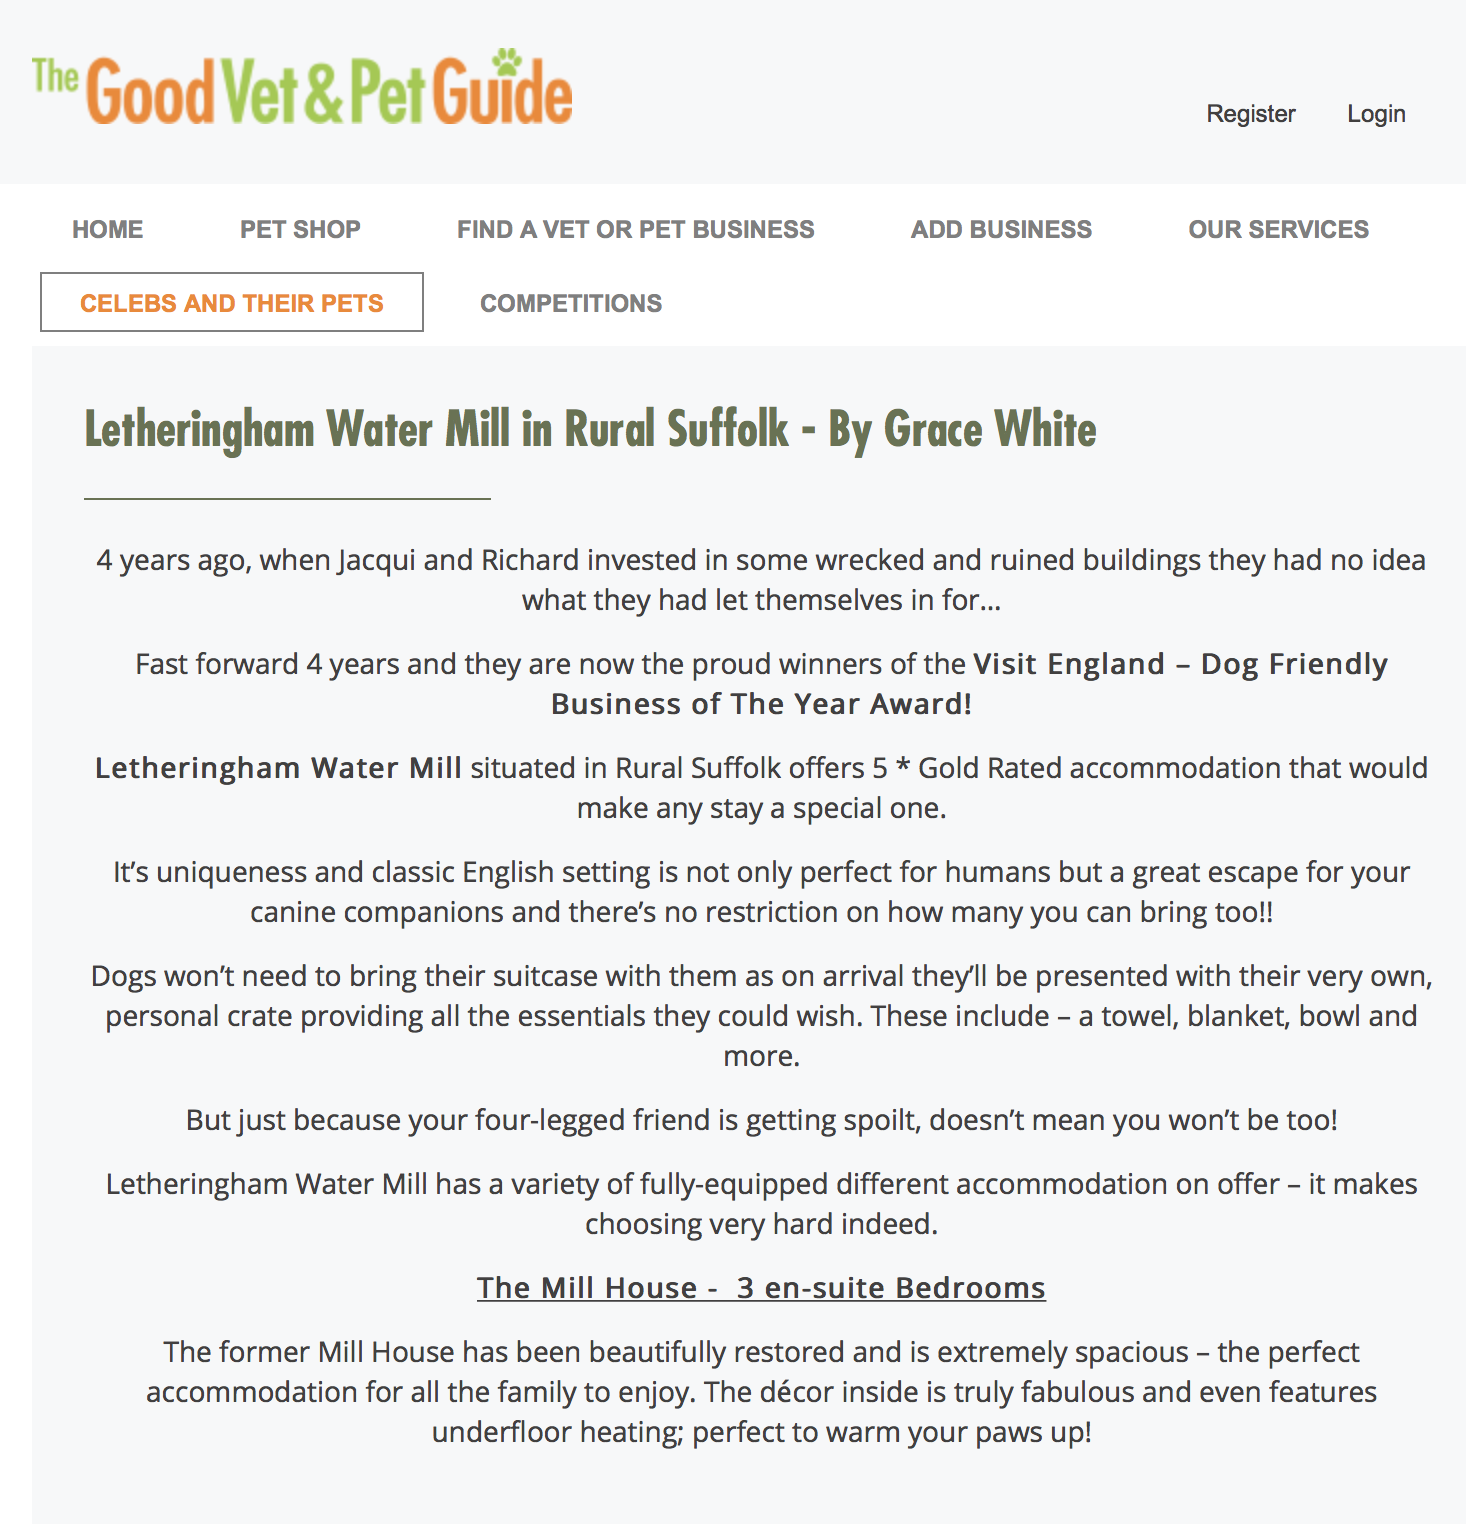 d6cc4a2ac81 The good vet and pet guide - 10th May 2017 — Letheringham Water Mill ...